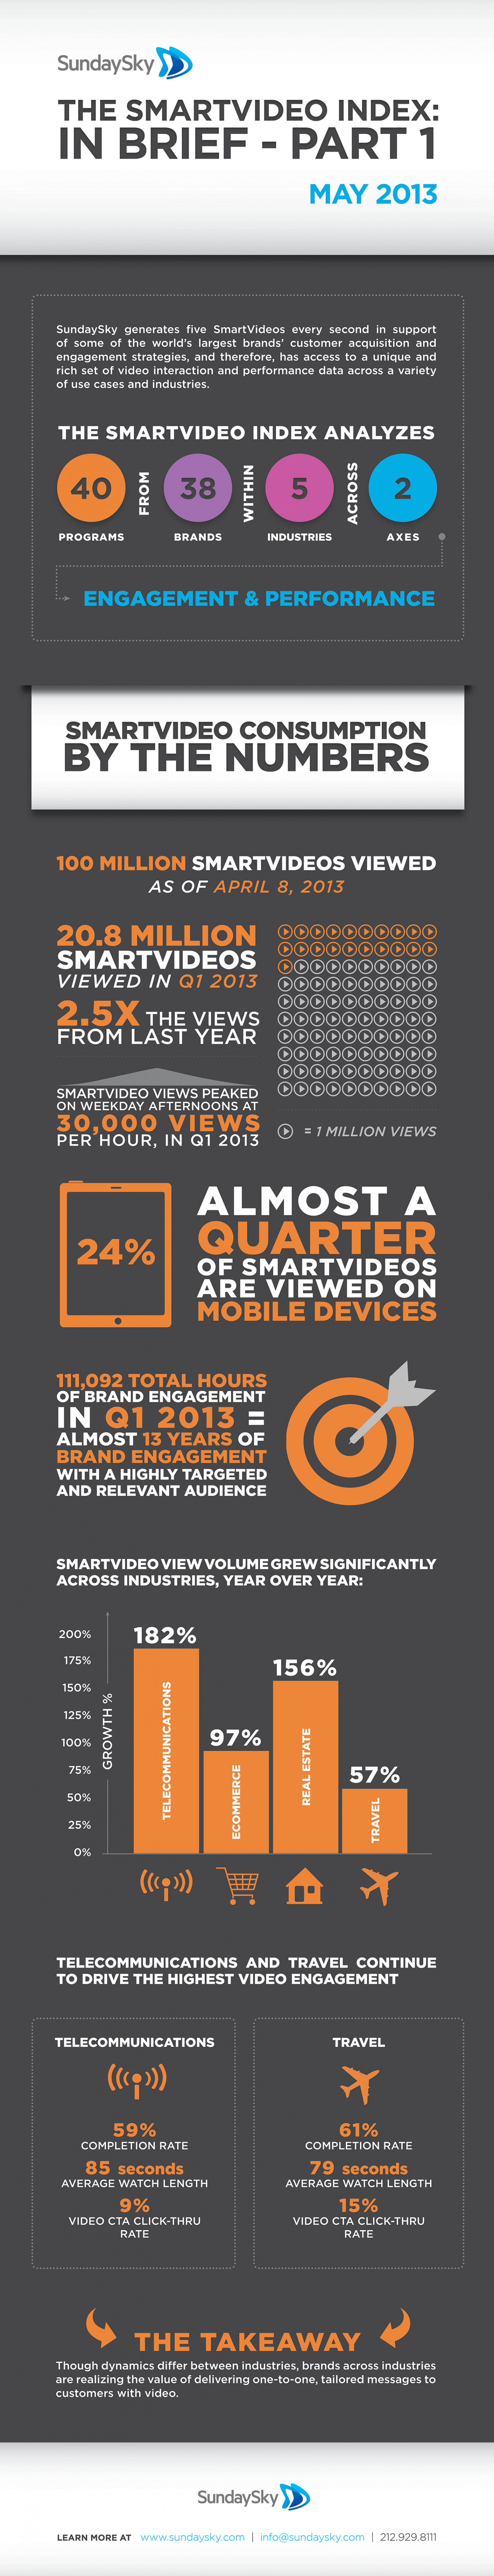 The SmartVideo Index: In Brief - Part 1 Infographic